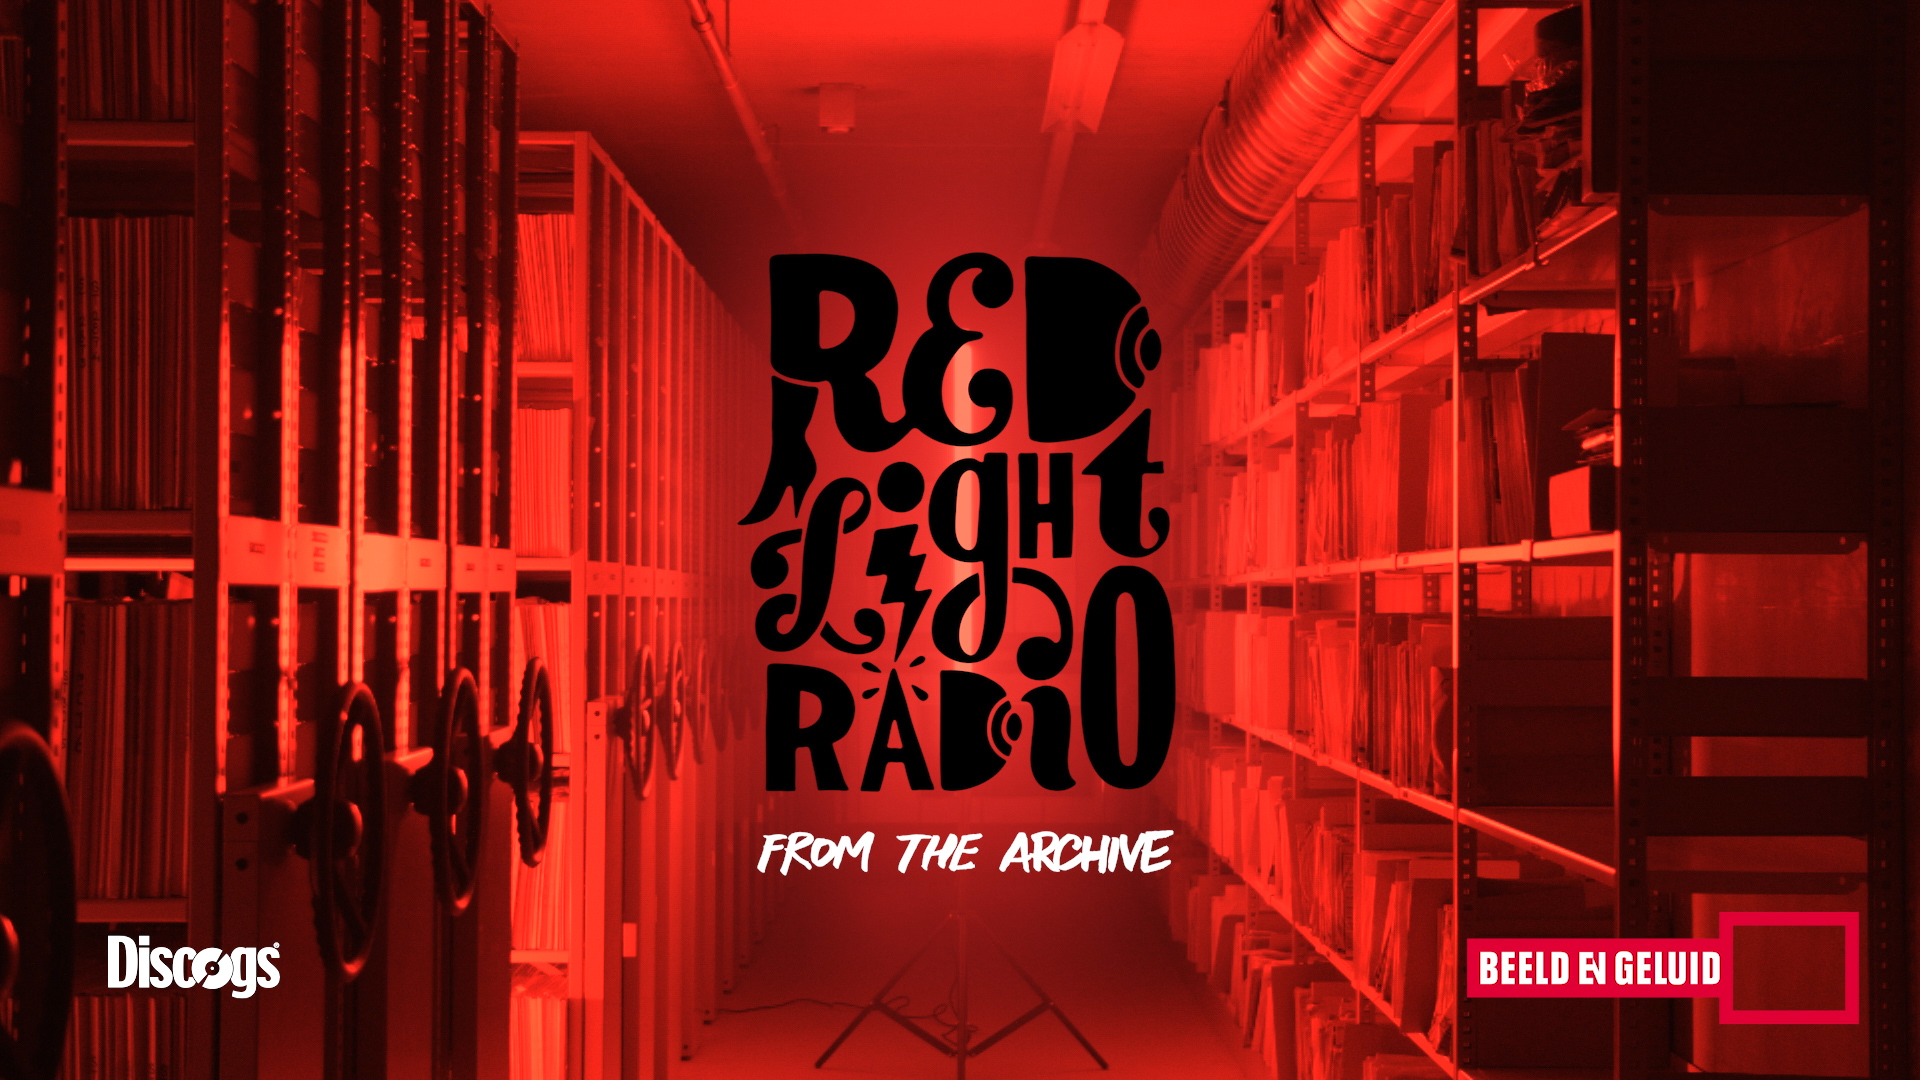 Red Light Radio x Beeld en Geluid | From the Archive